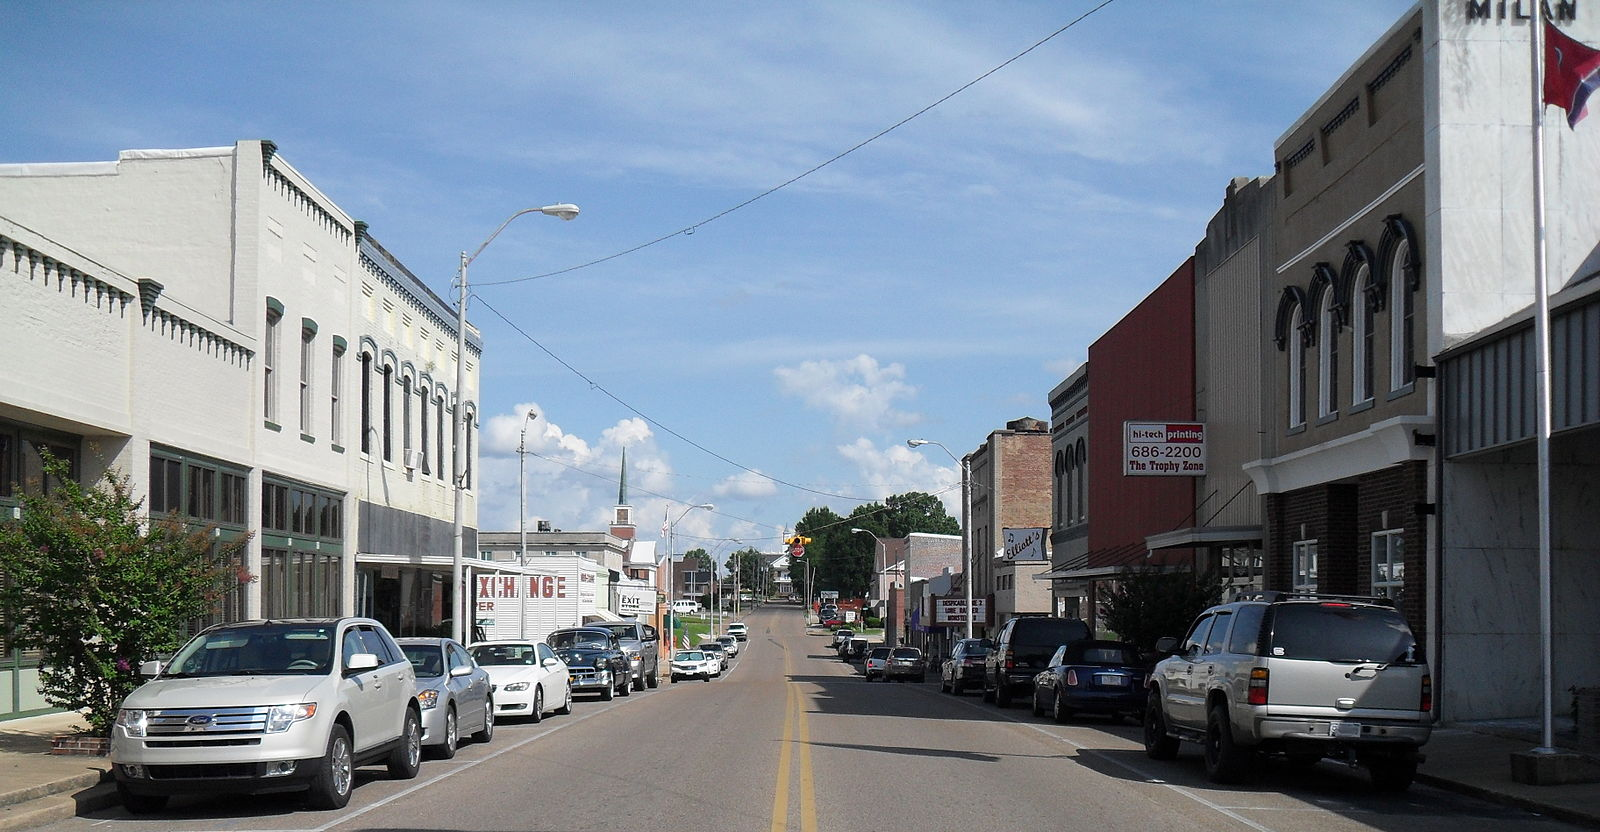 Milan_TN_USA_Main_street_looking_Southeast.